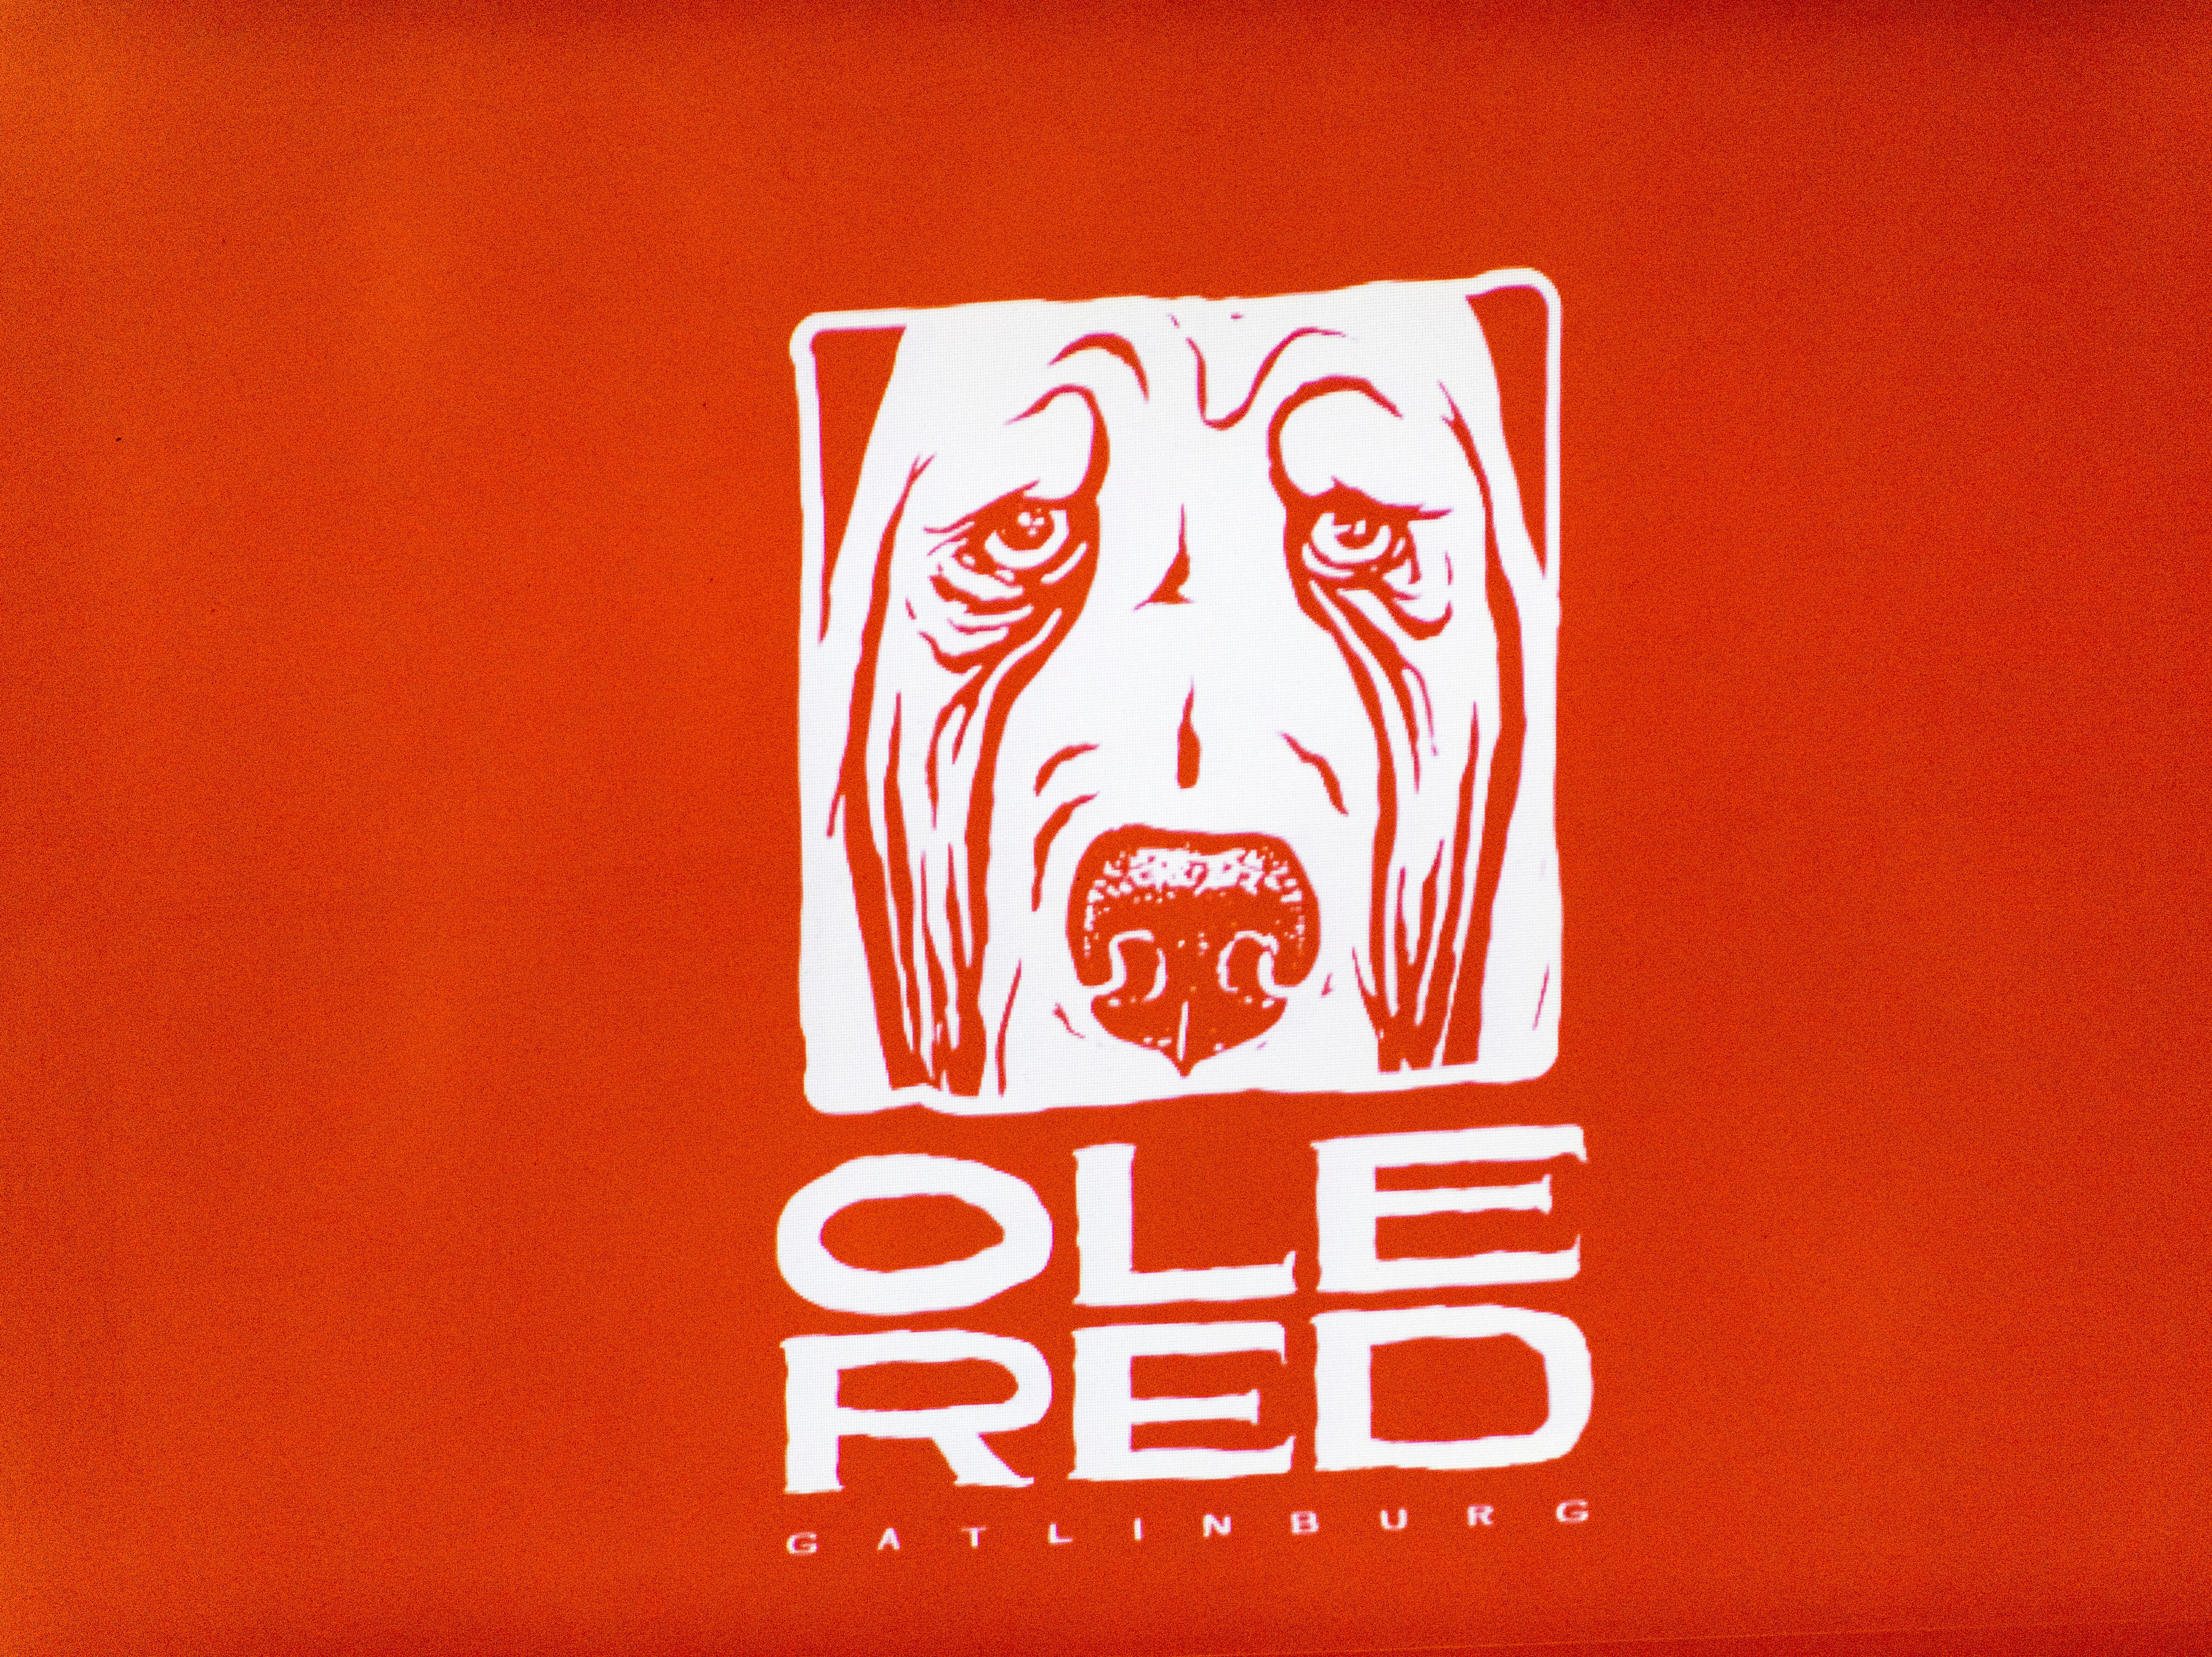 The Ole Red Gatlinburg logo is displayed in Gatlinburg, Tennessee on Tuesday, September 18, 2018. The 13,500 square-foot entertainment venue with a two-story bar, restaurant and performance space with space for 325 patrons is slated to open spring 2019.